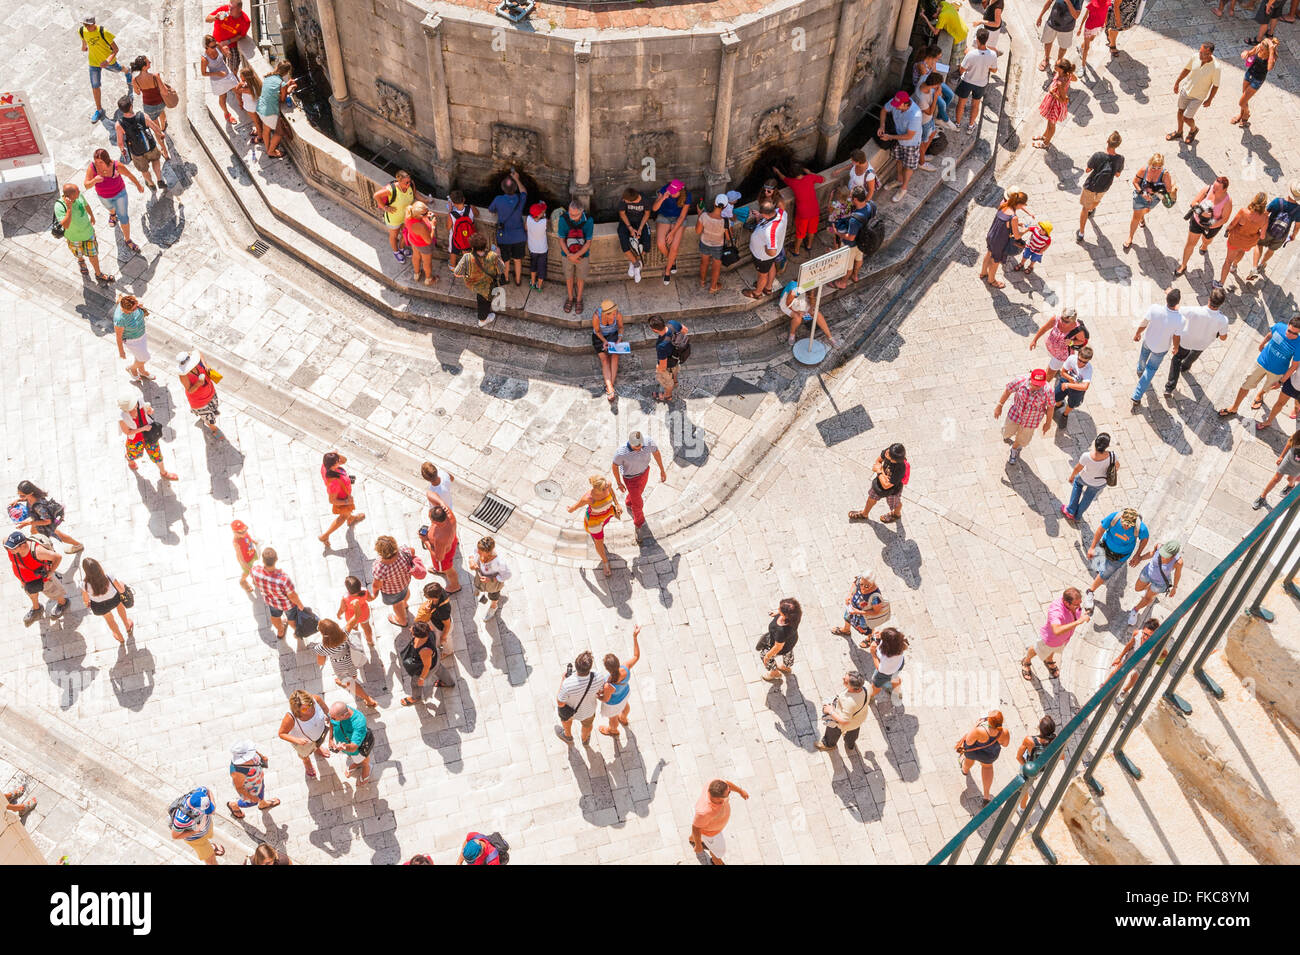 Crowds of holiday makers enjoy the sun and sightseeing around the old historical city of Dubrovnik in Croatia. Stock Photo